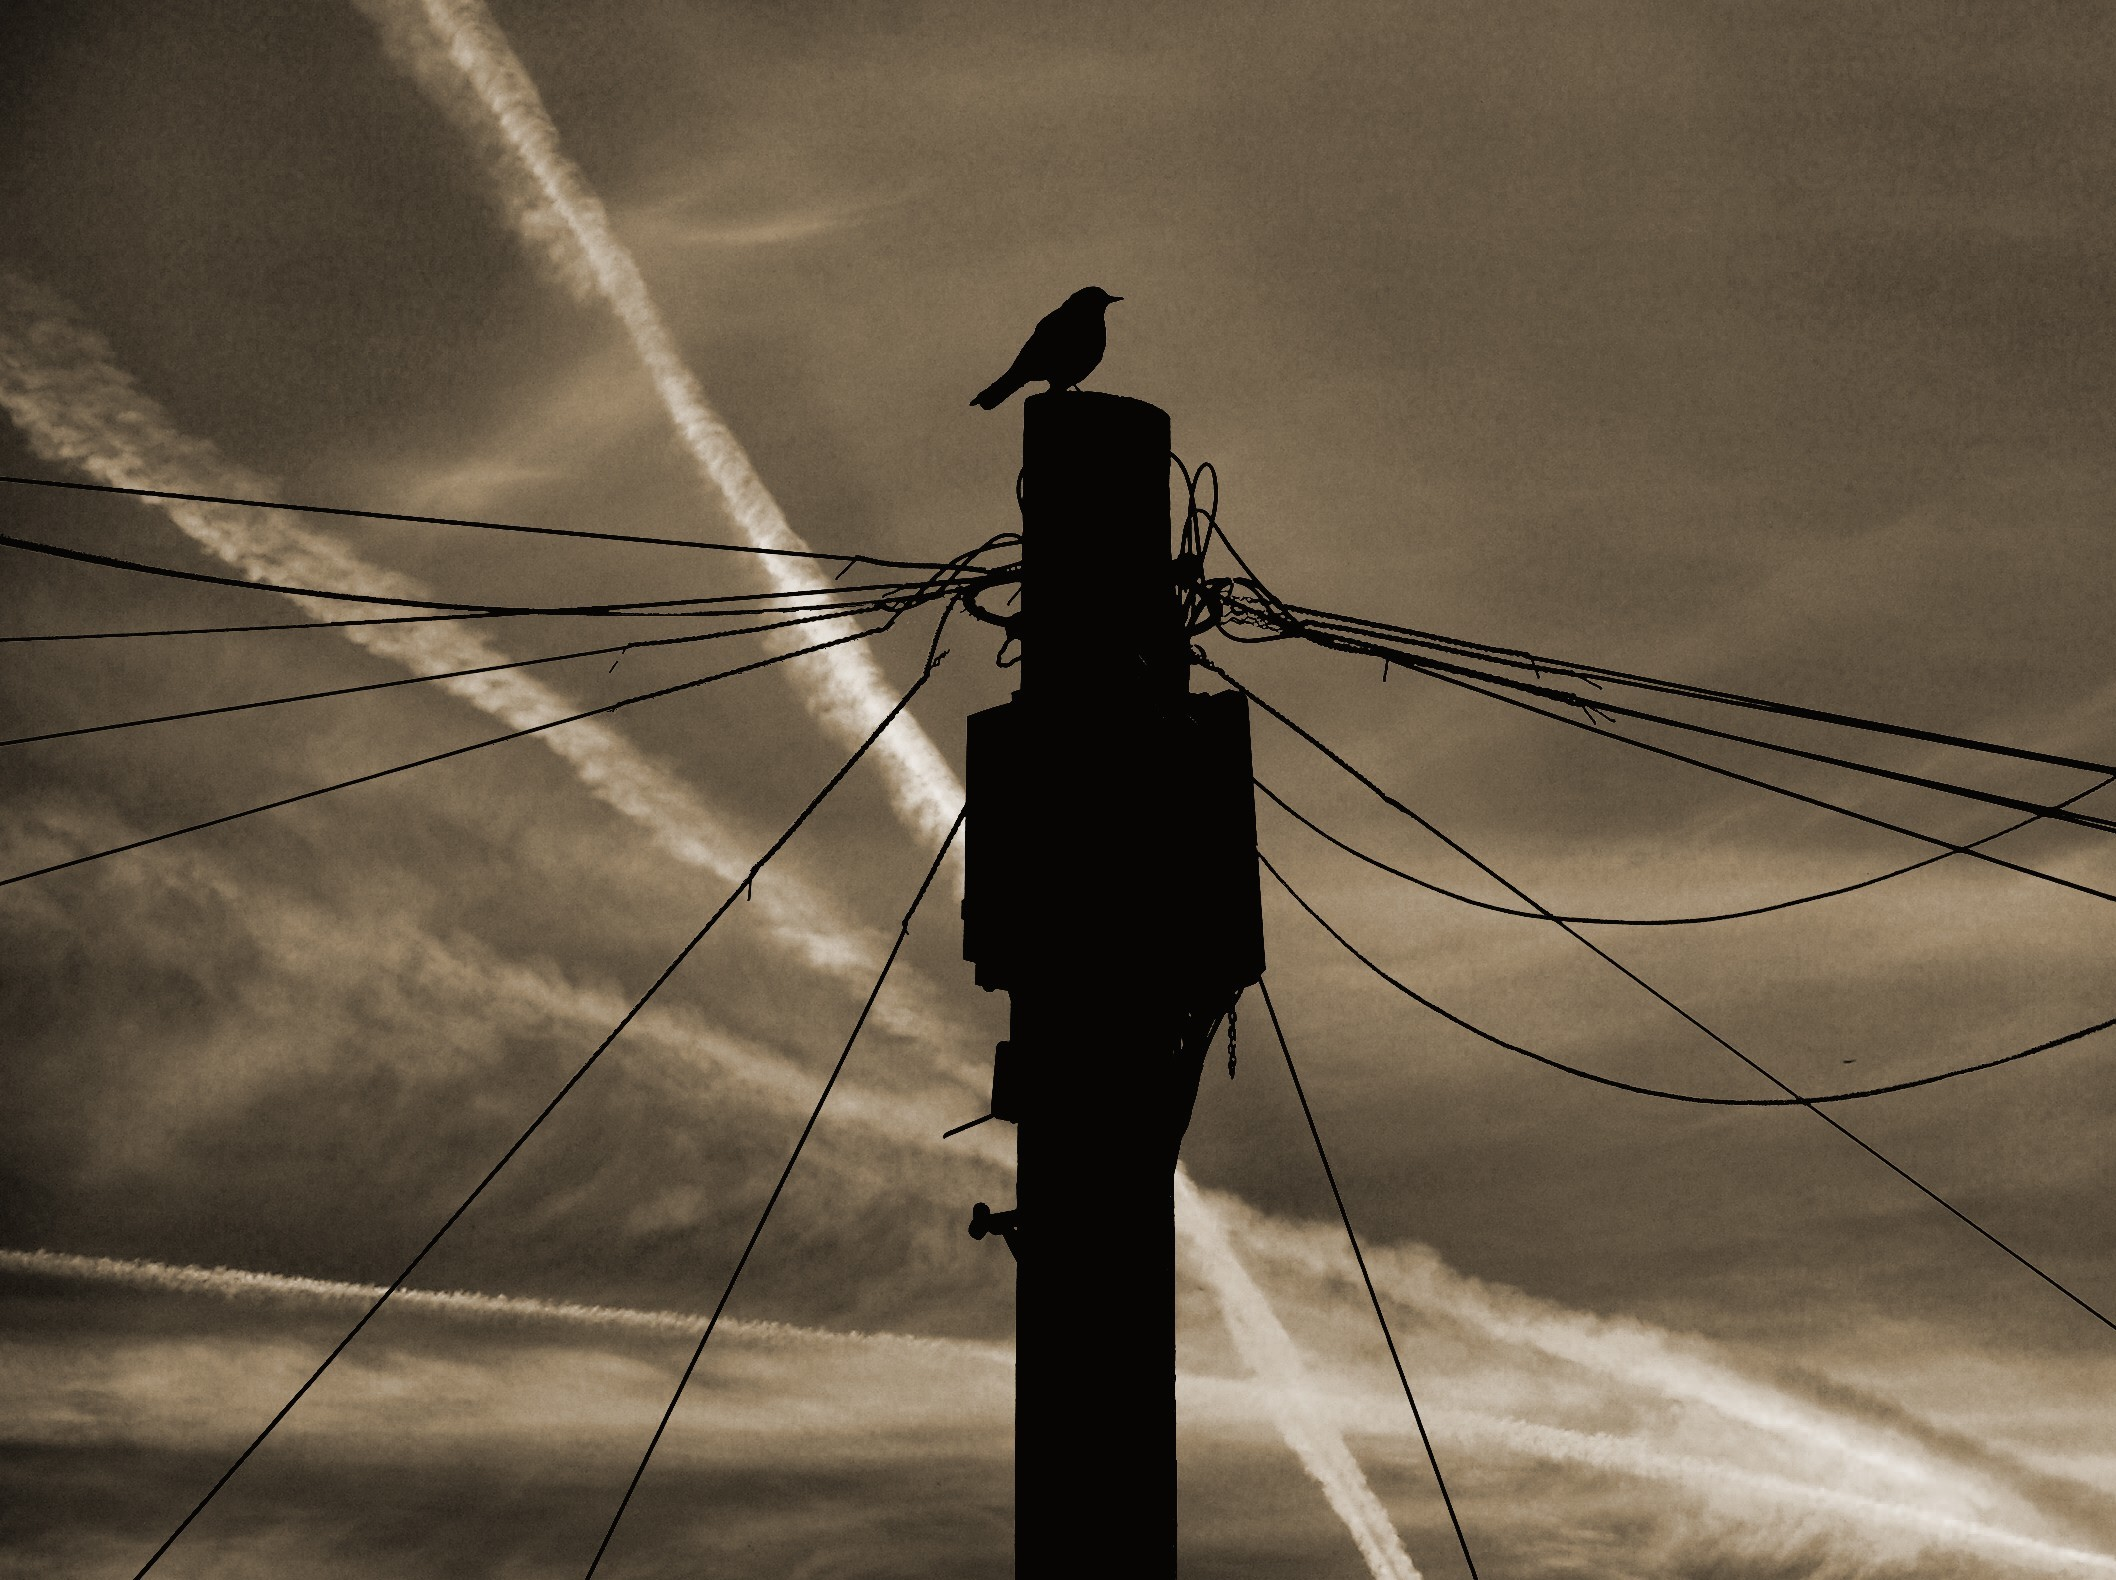 sunset Birds power lines